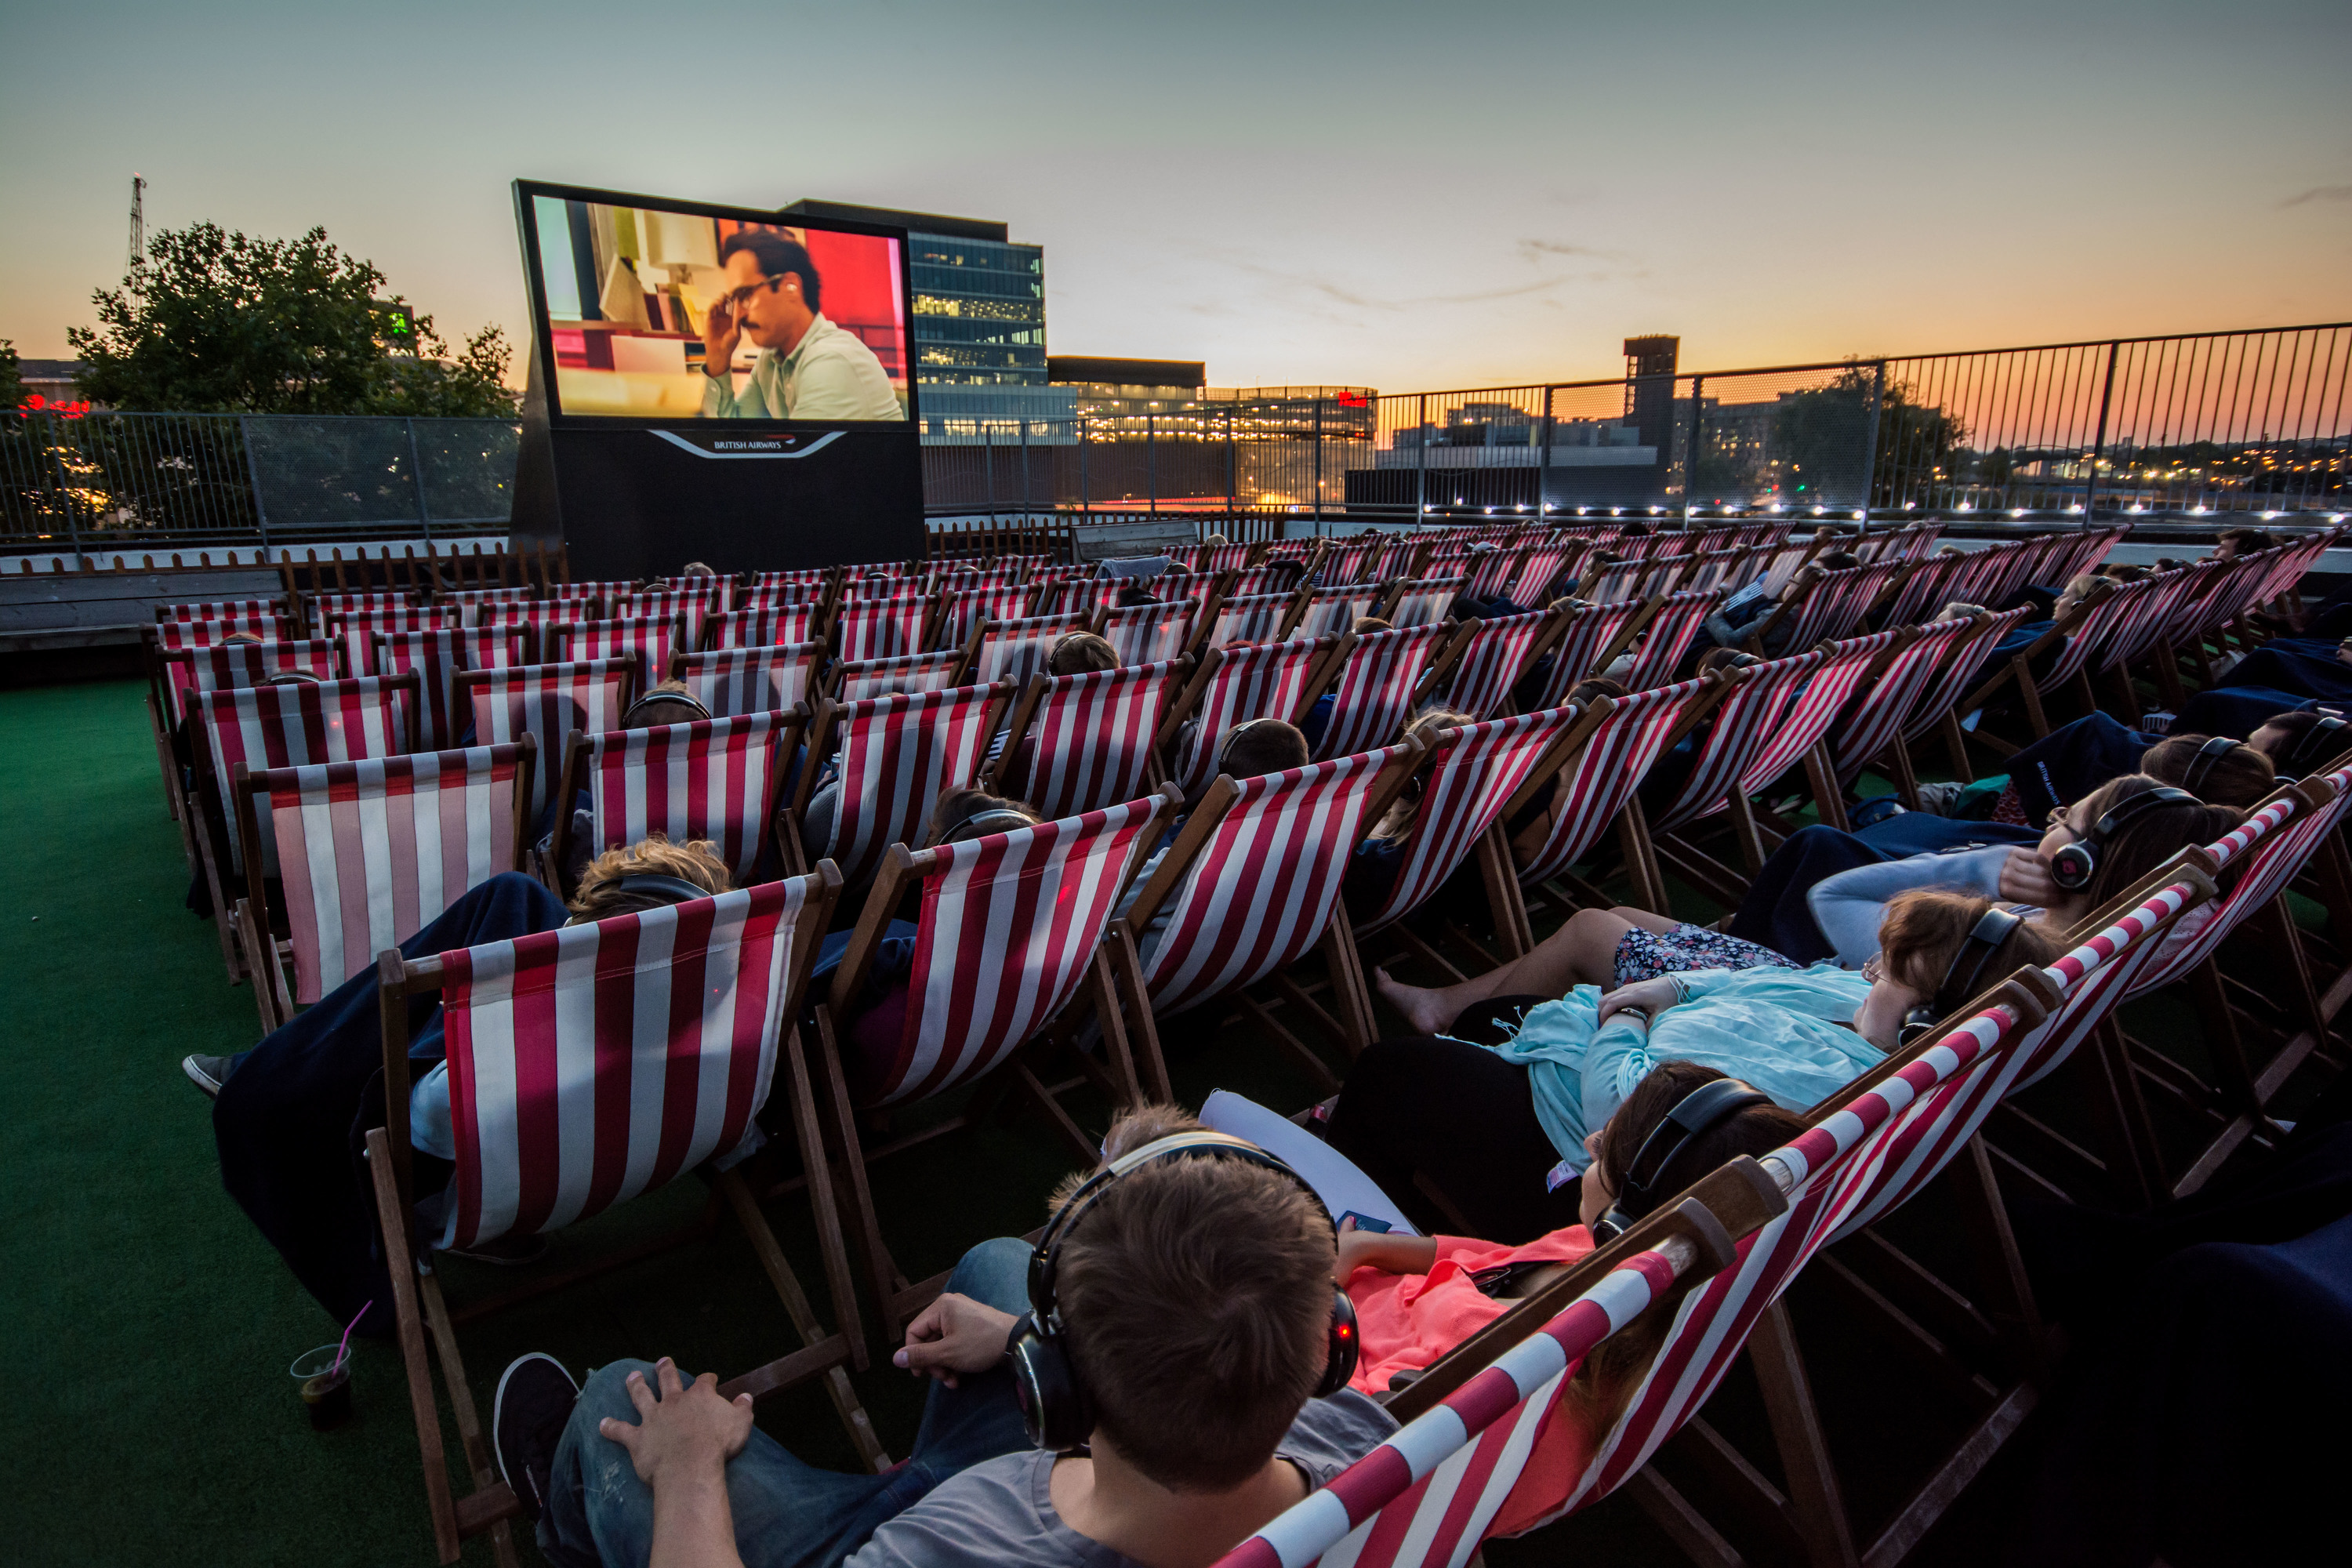 Get ready for a summer of outdoor movies in NYC